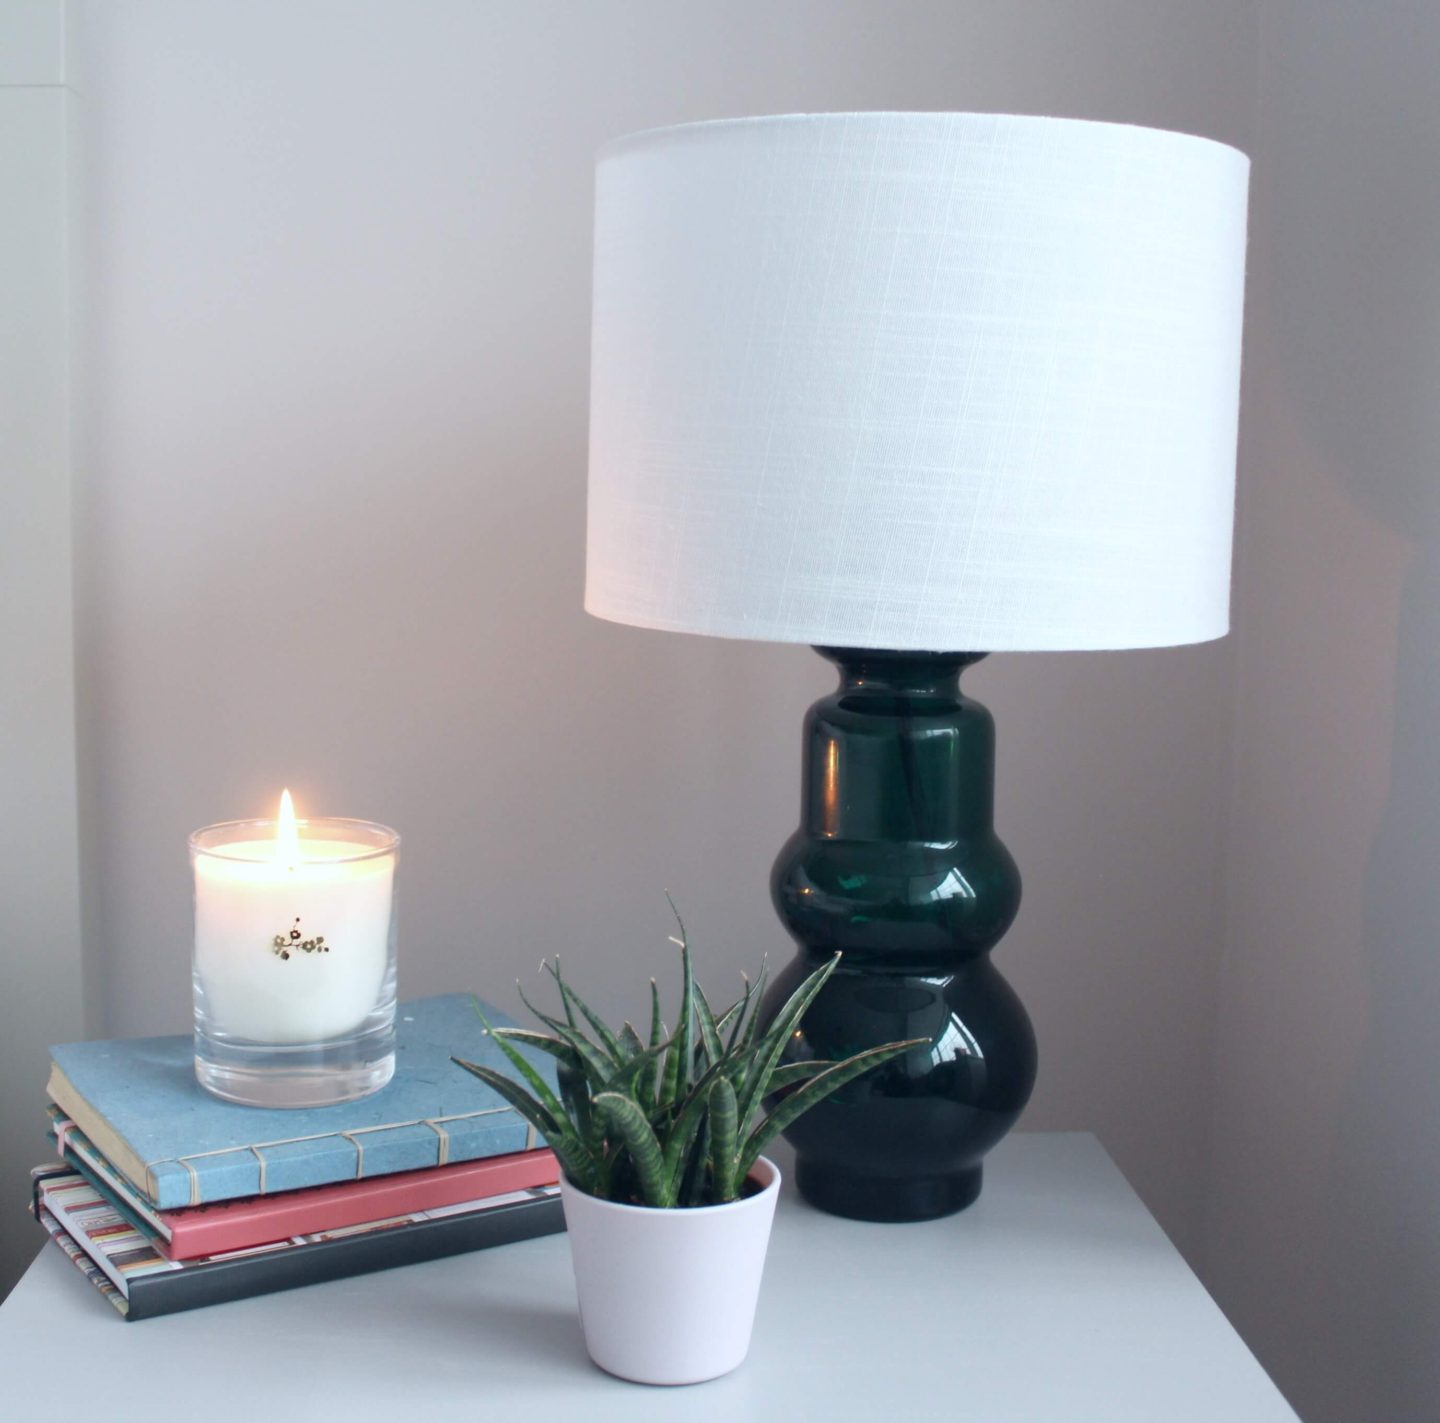 After Trawling Through What Seemed Like A Million Websites And Buying And  Returning So Many Lamps, I Still Couldnu0027t Find Anything That Suited.